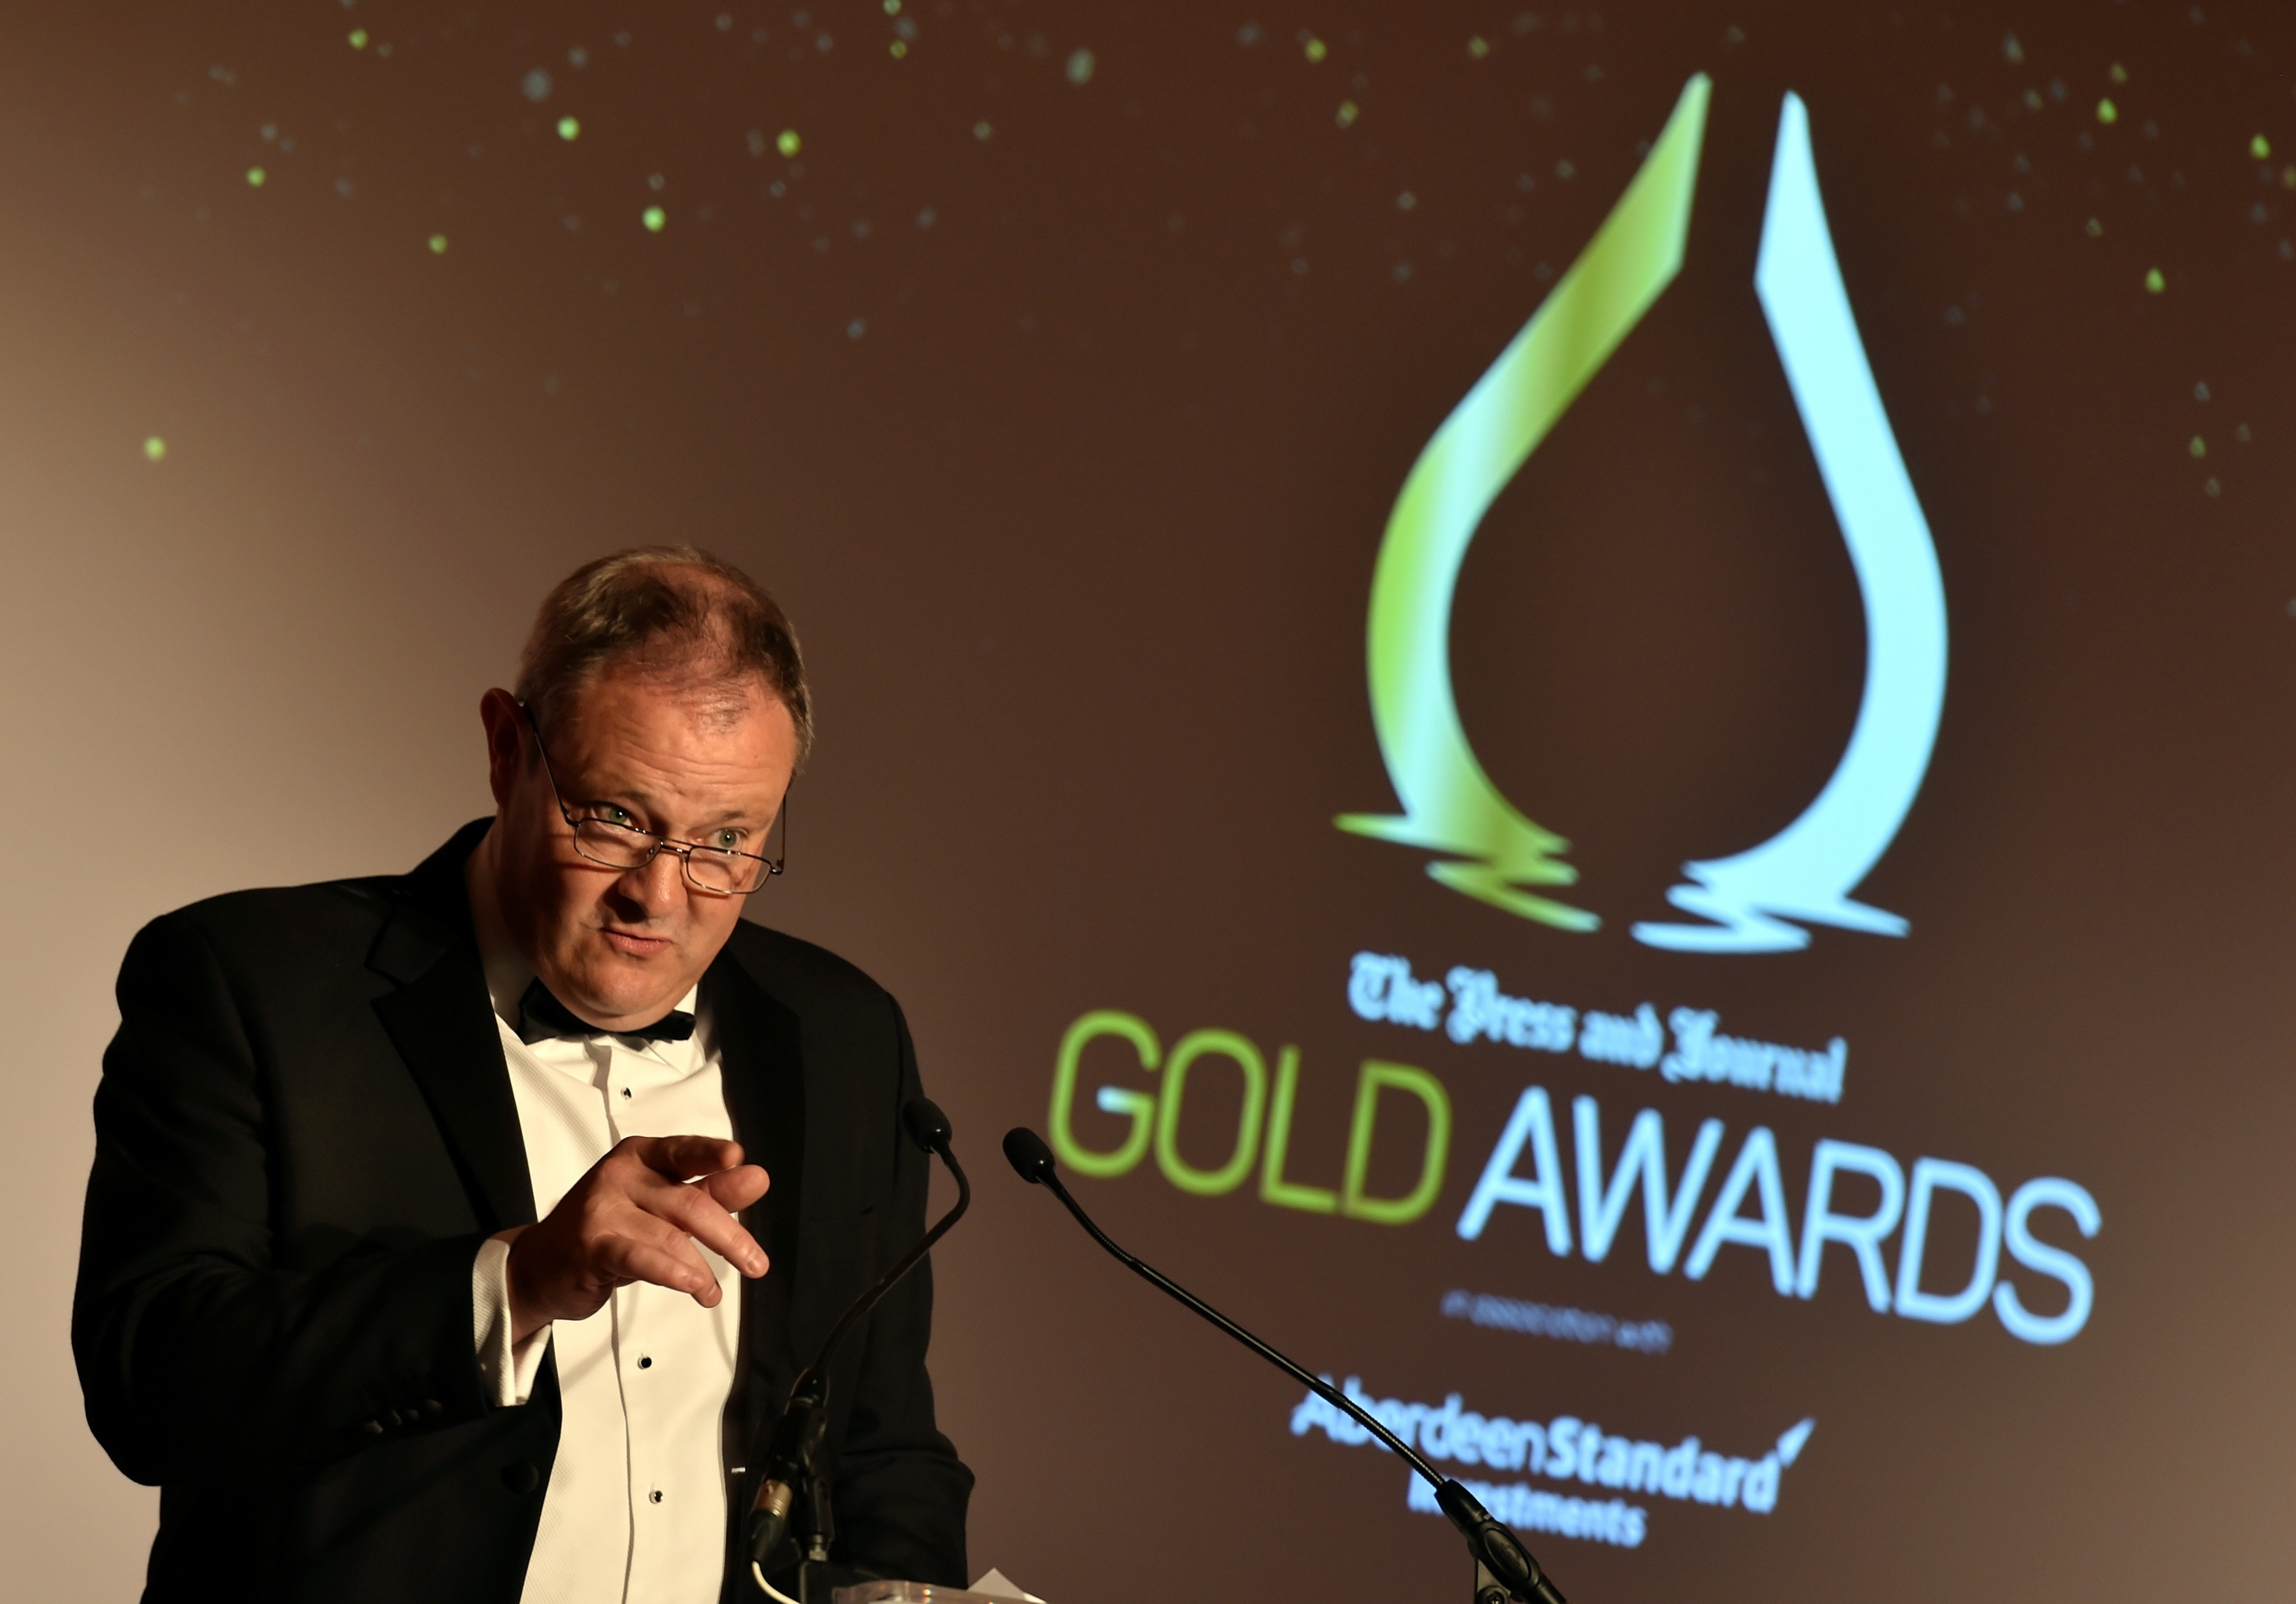 Gold awards held at the Marcliffe Hotel and Spa, Aberdeen. Richard Neville. Picture by COLIN RENNIE September 8, 2017.